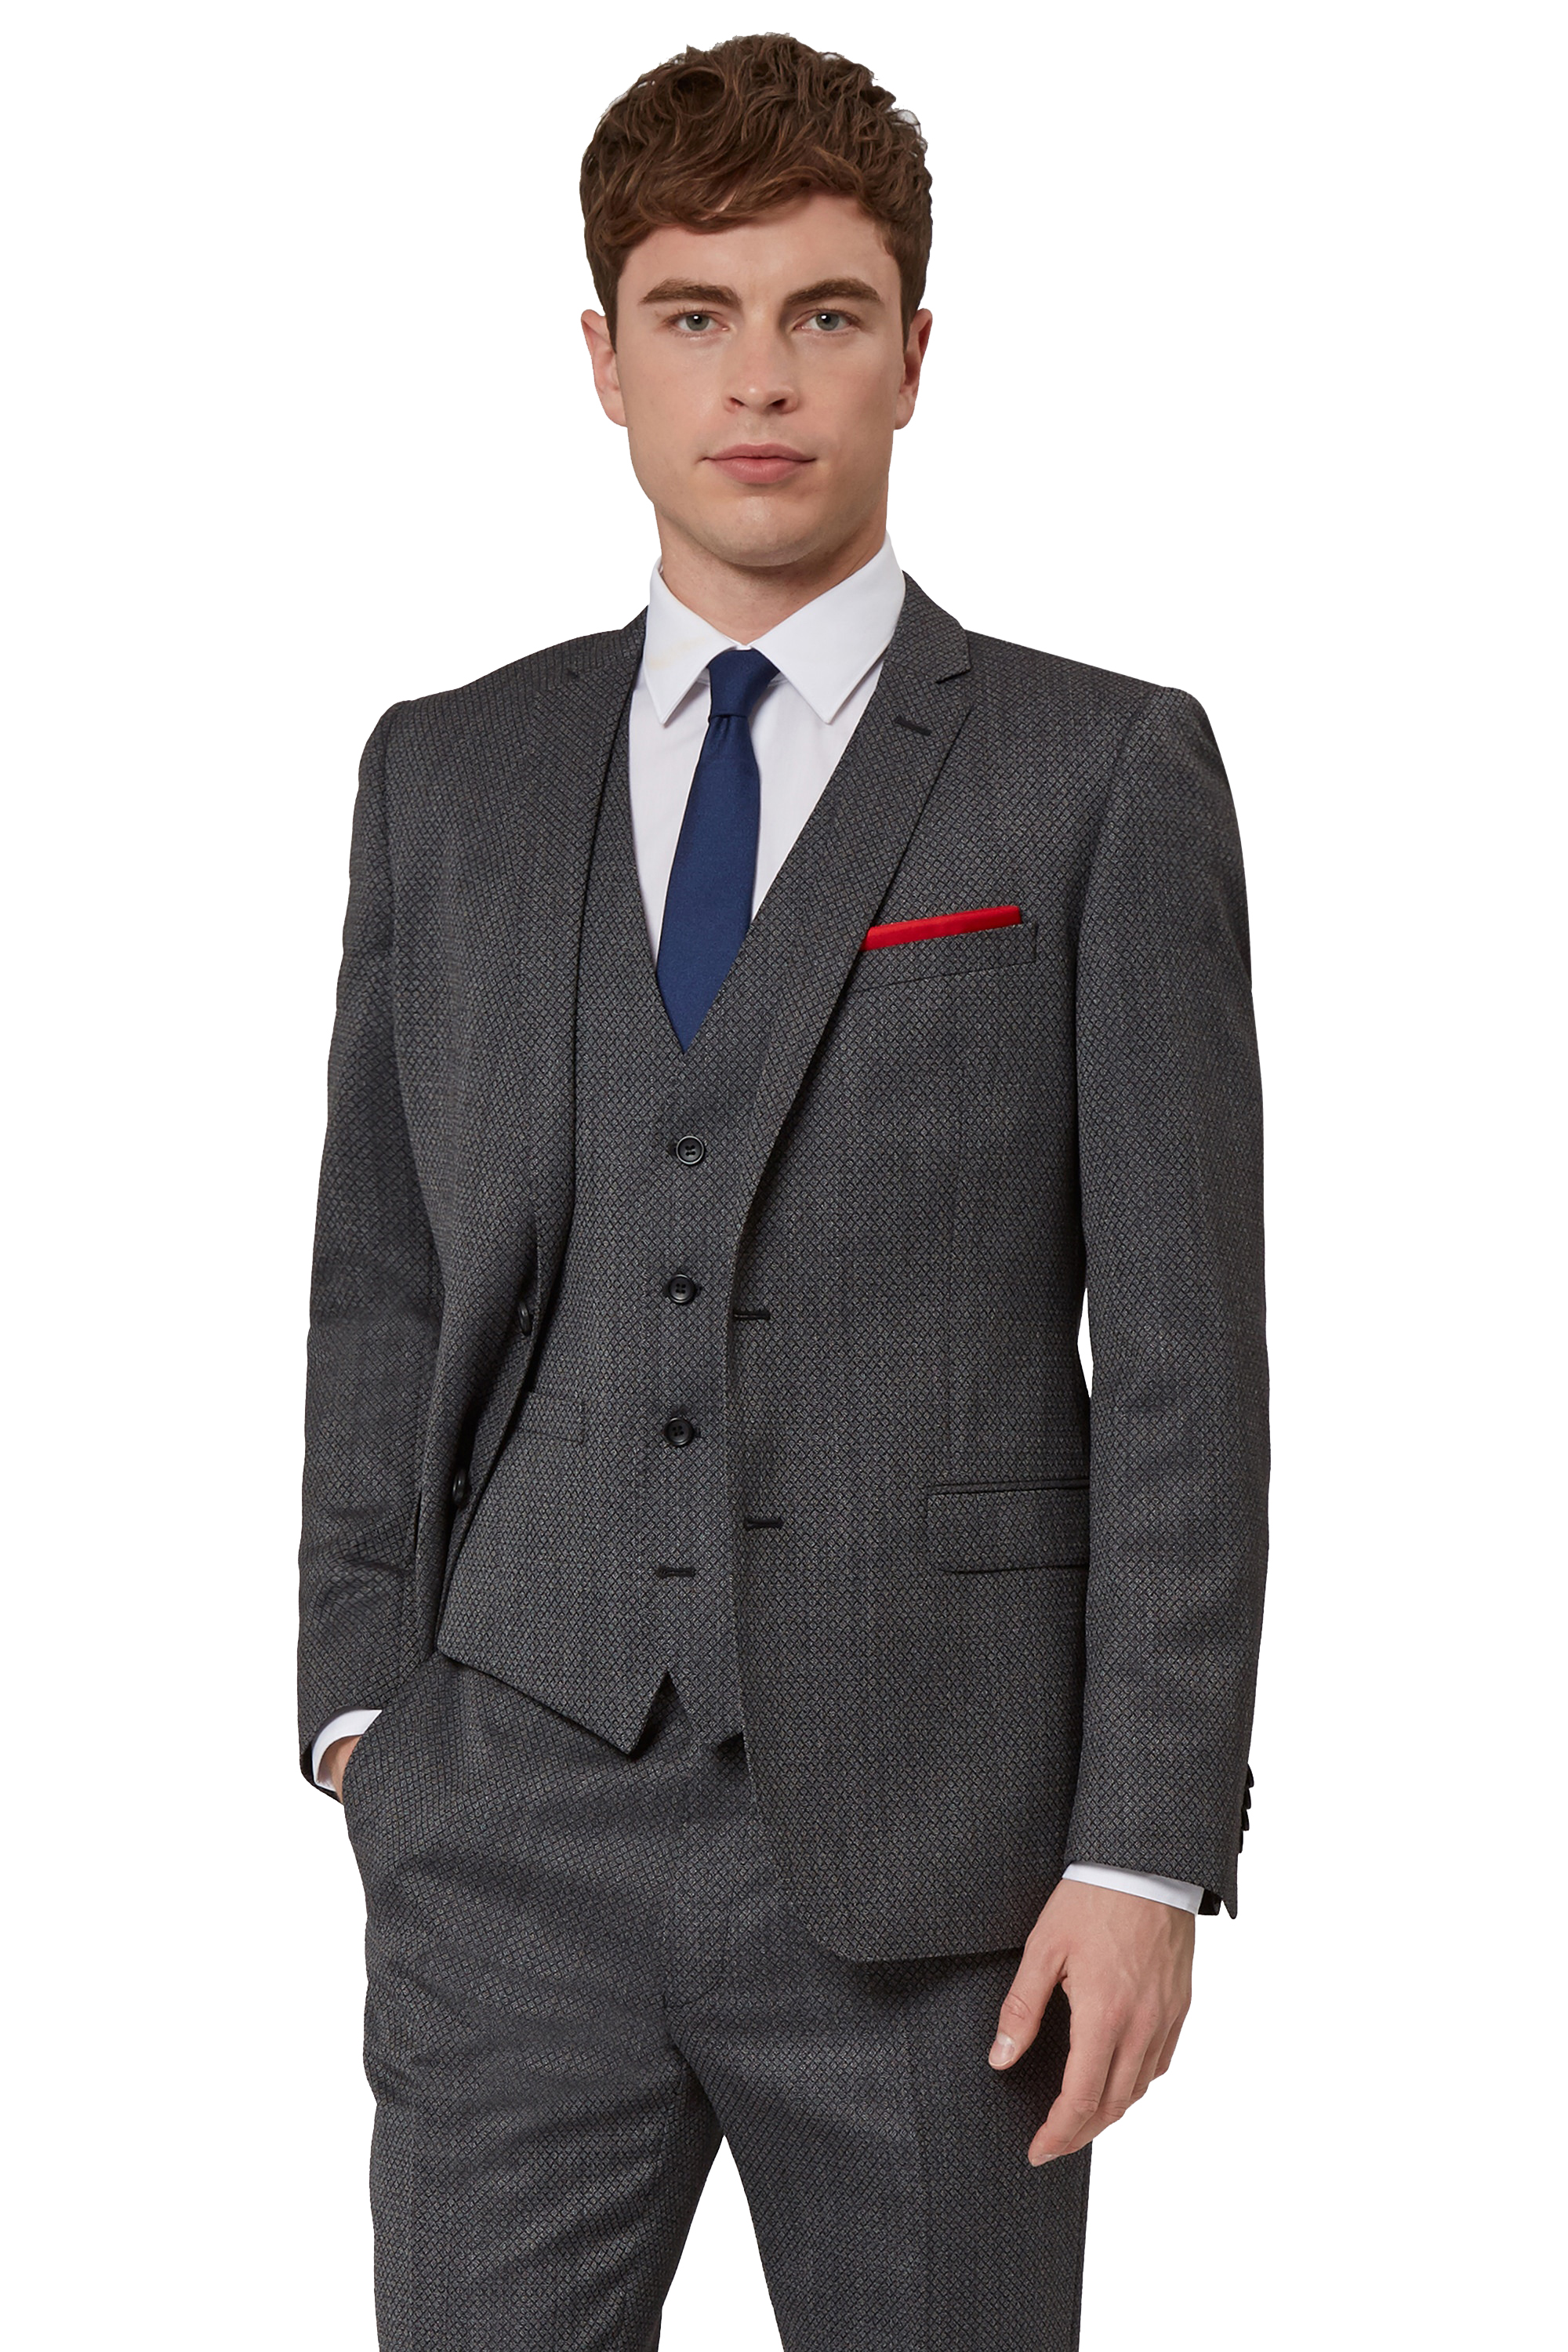 French Connection Mens Grey Suit Jacket Slim Fit Charcoal Jacquard ...